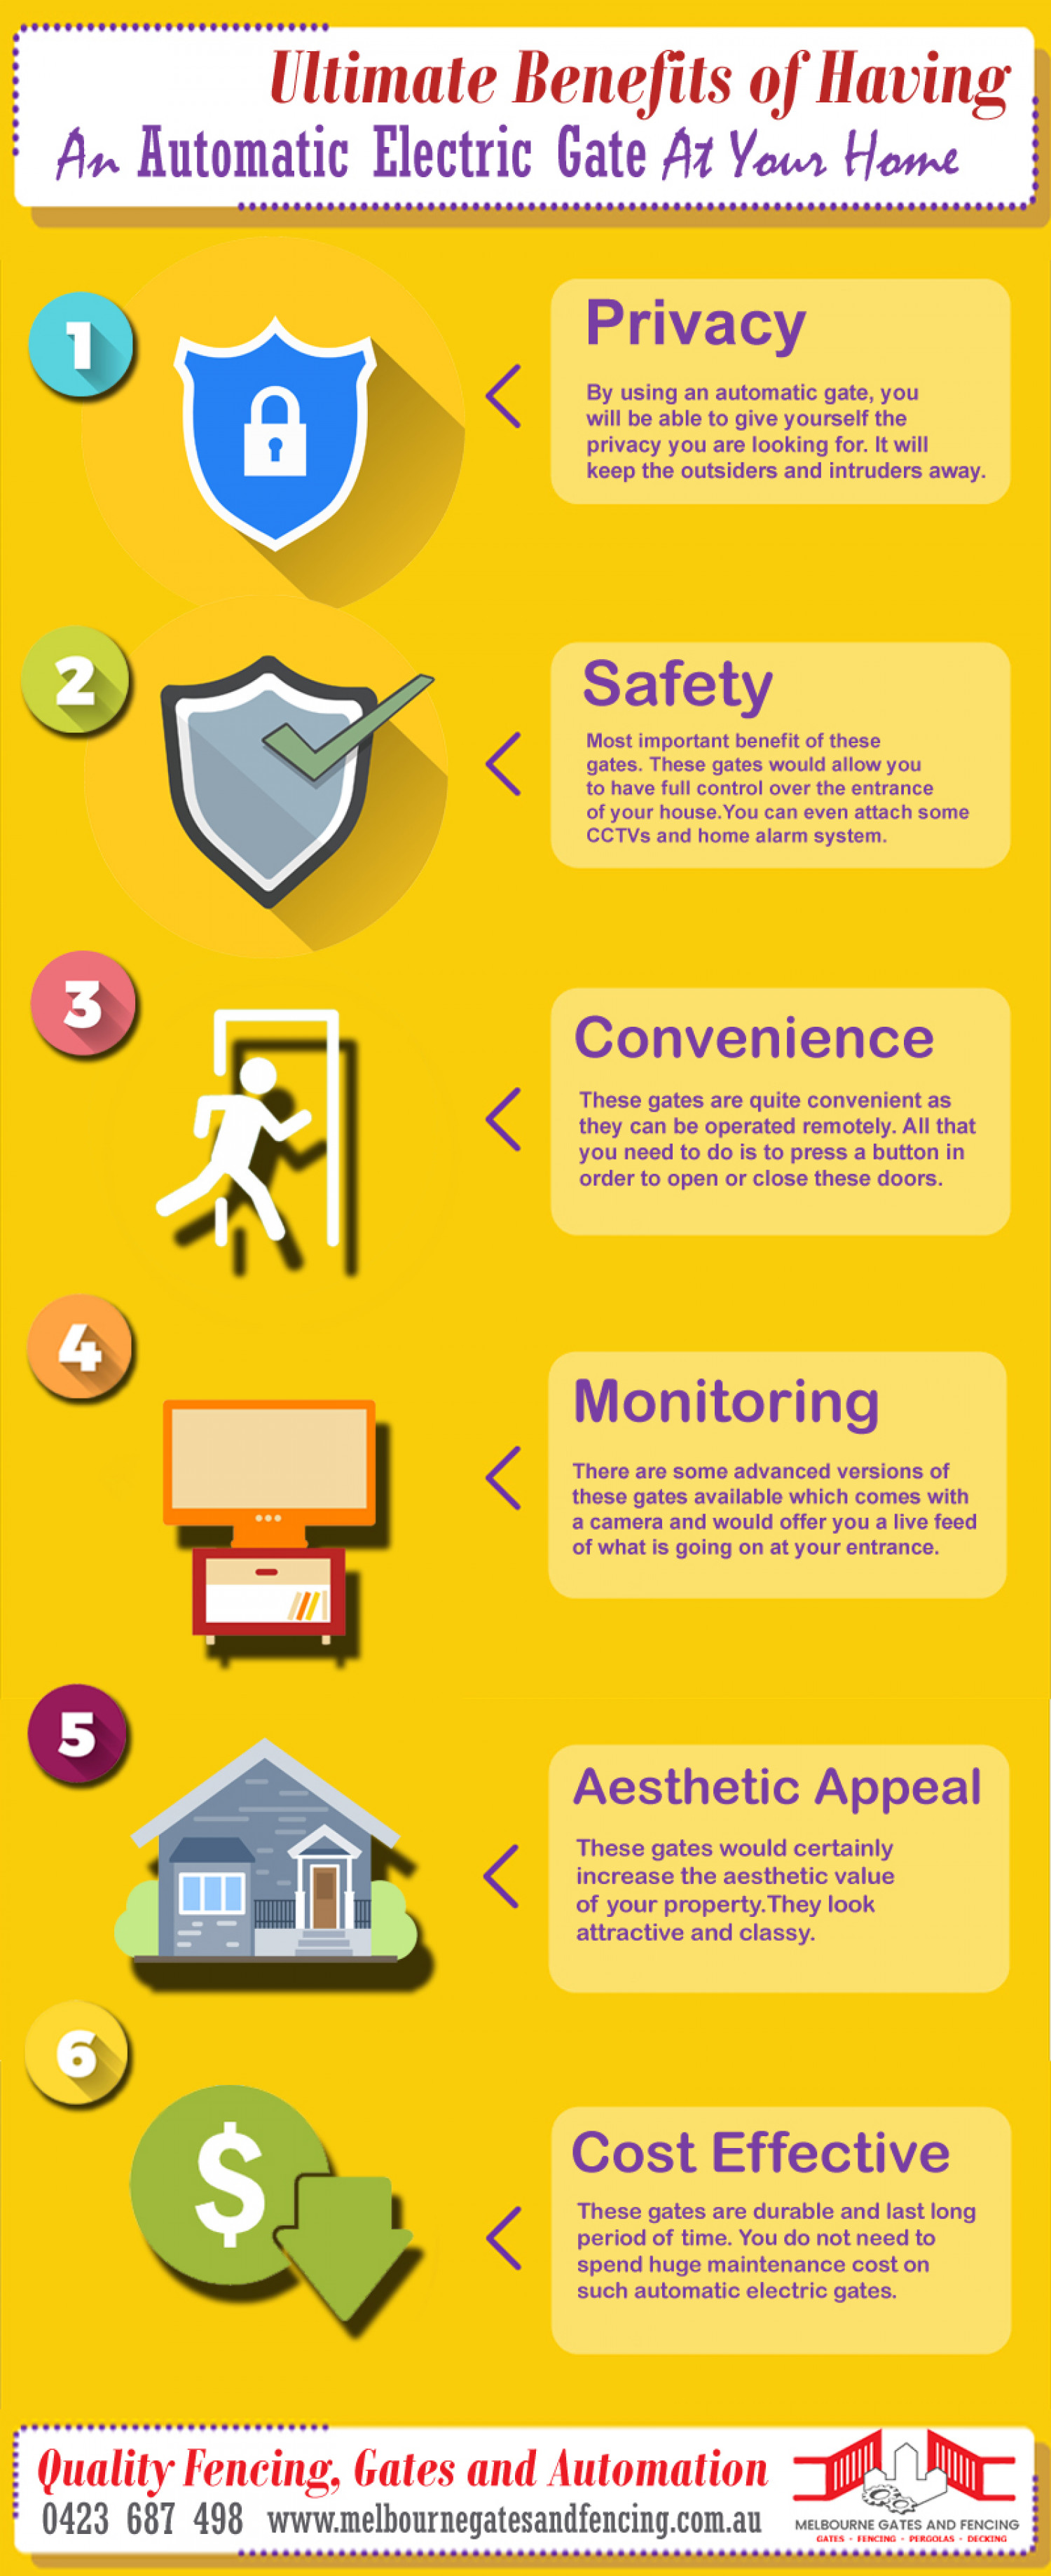 Automatic Electric Gates for Your Home Infographic